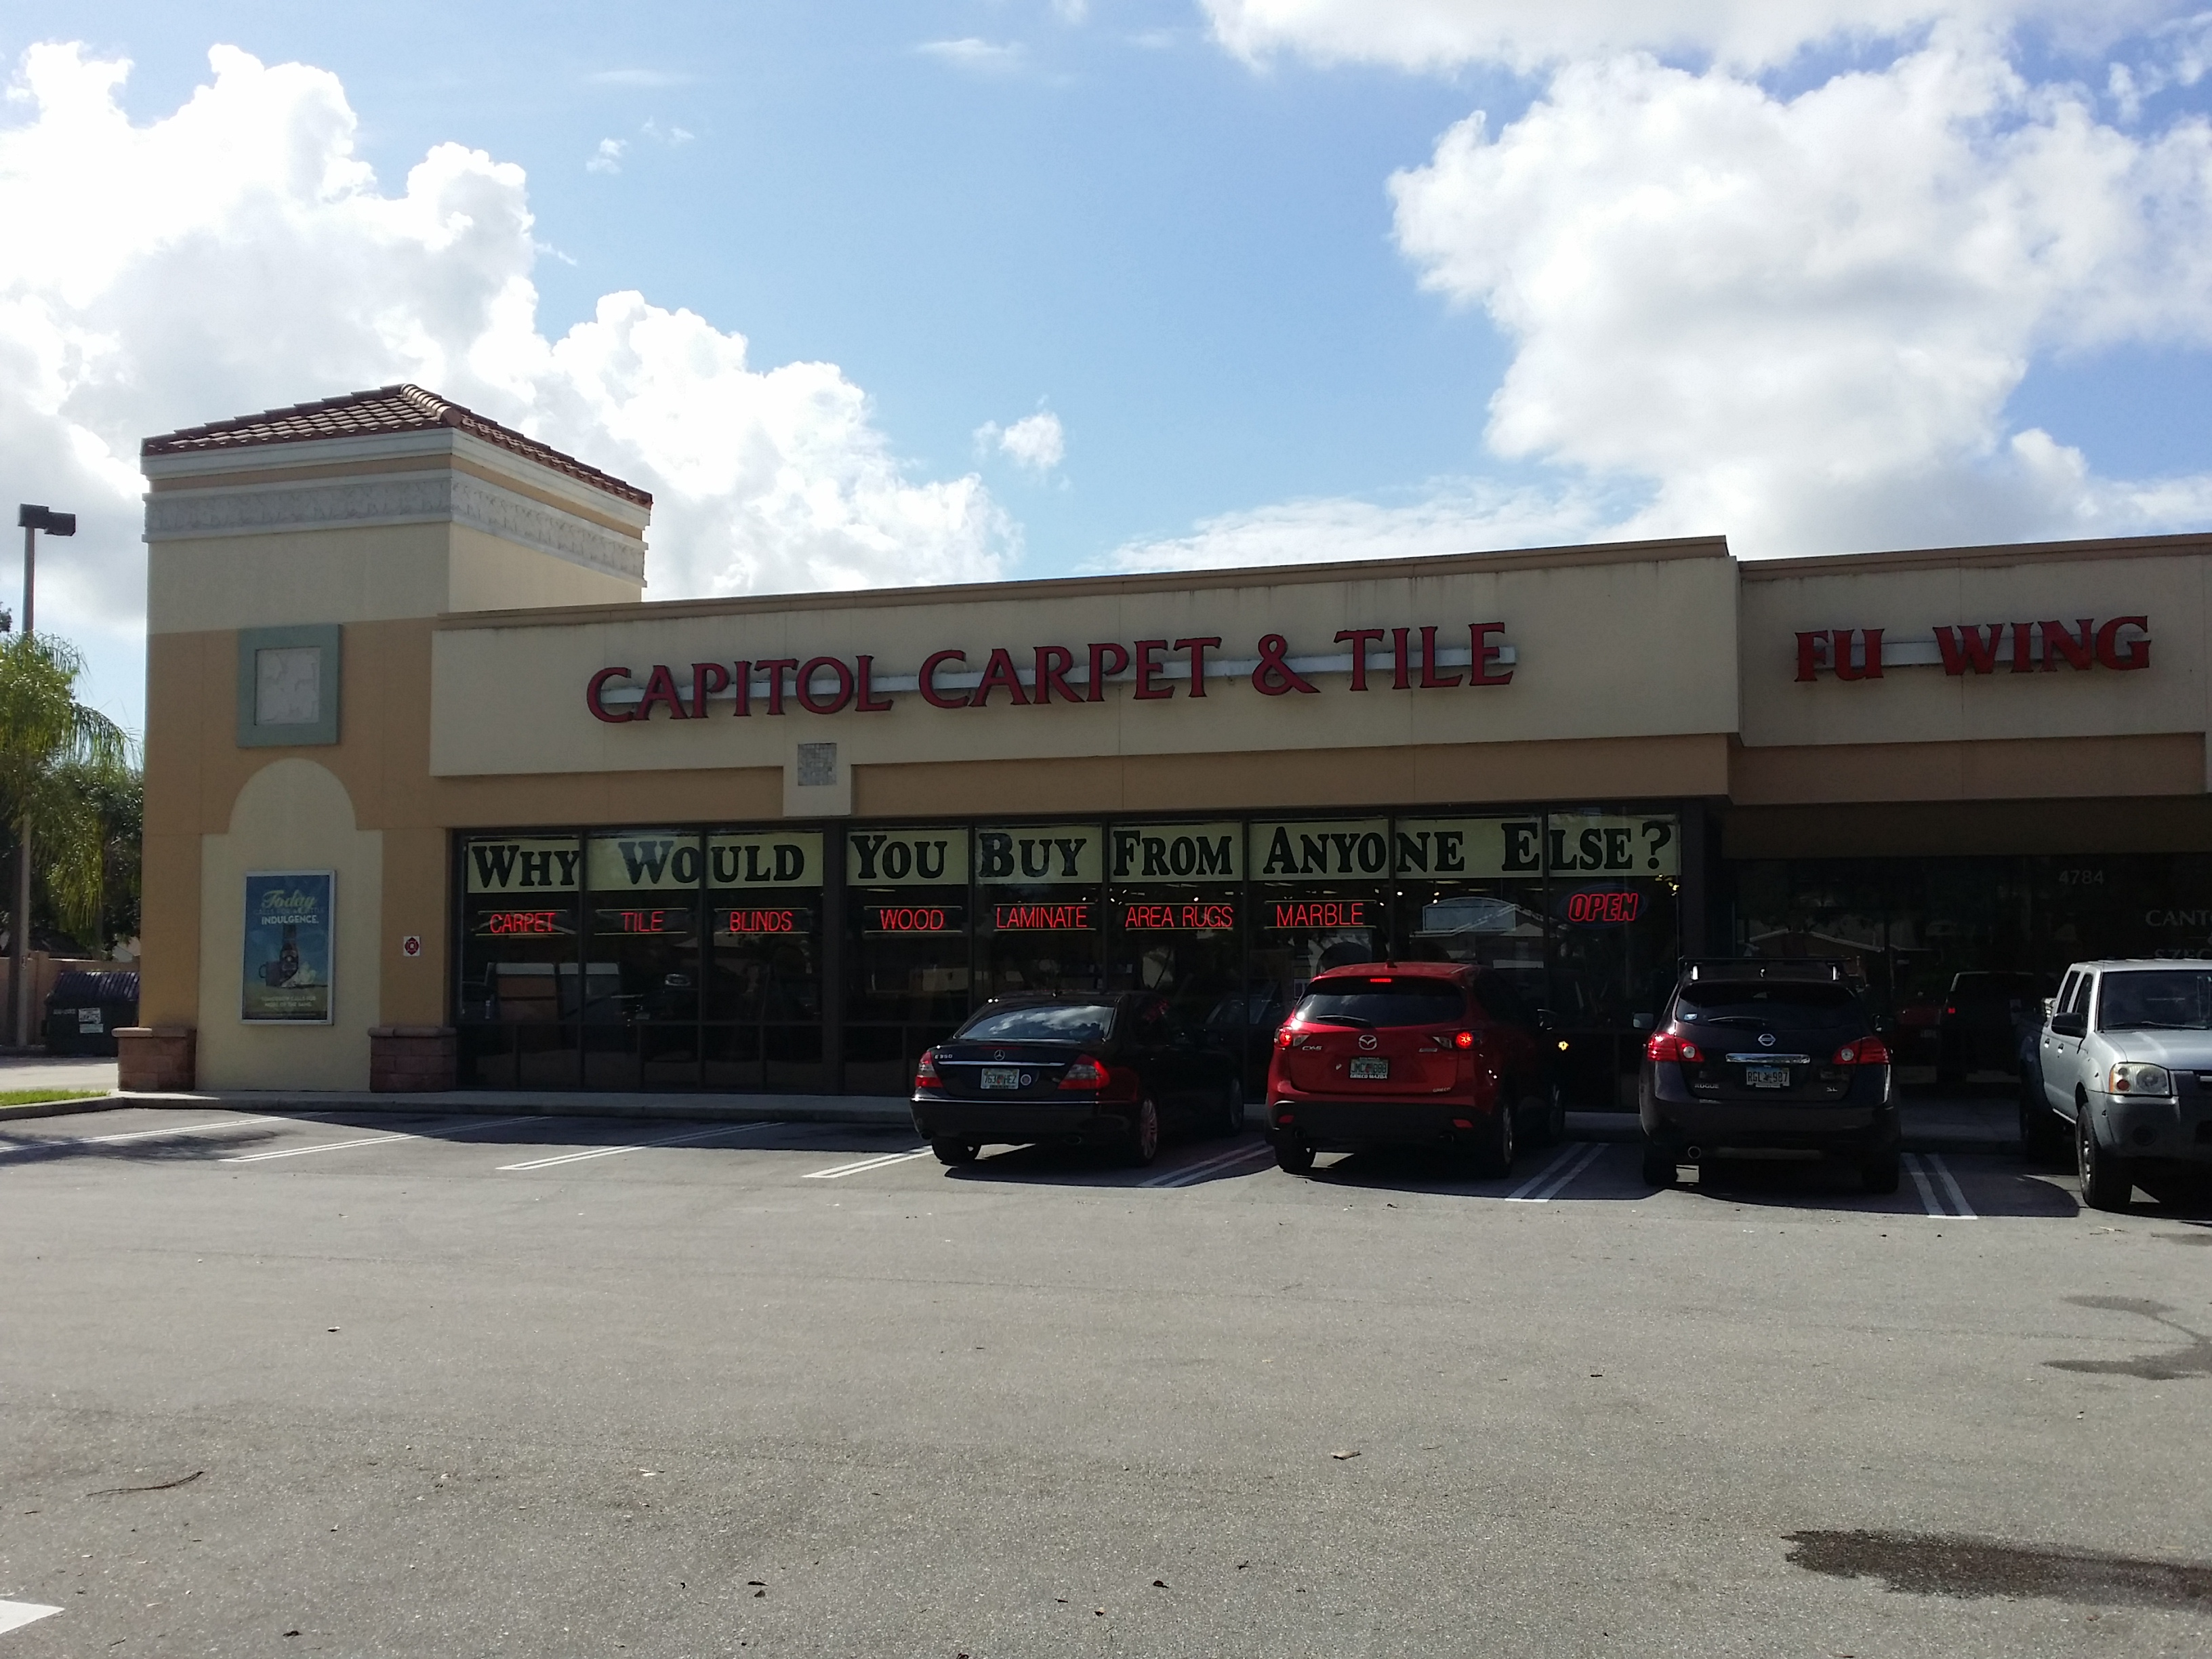 Capitol Carpet & Tile and Window Fashions - 4786 N Congress Ave, Boynton Beach, FL 33426